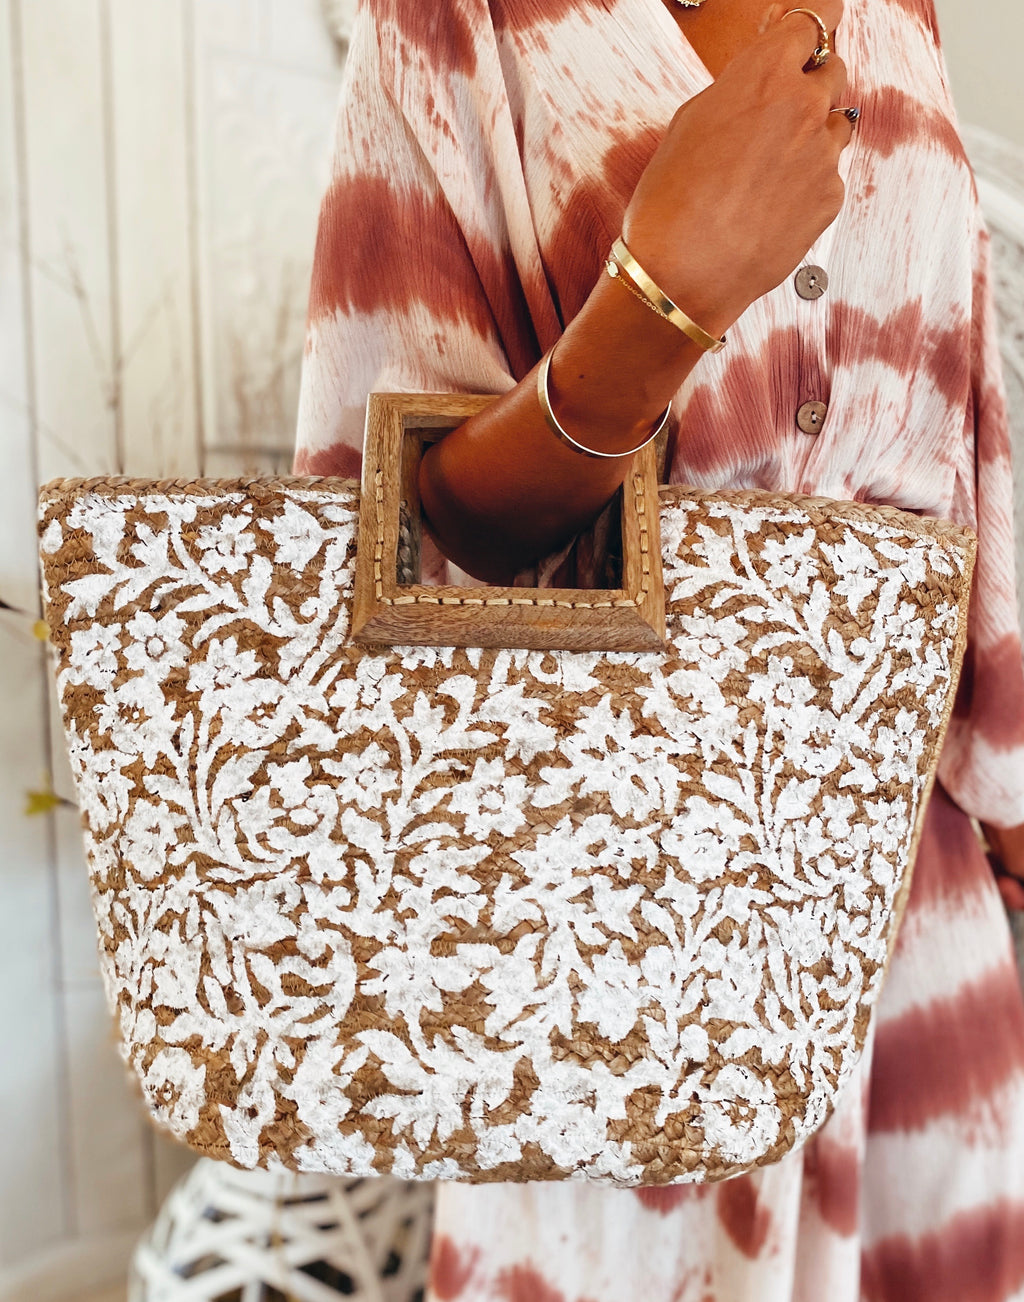 The South Pacific Tote